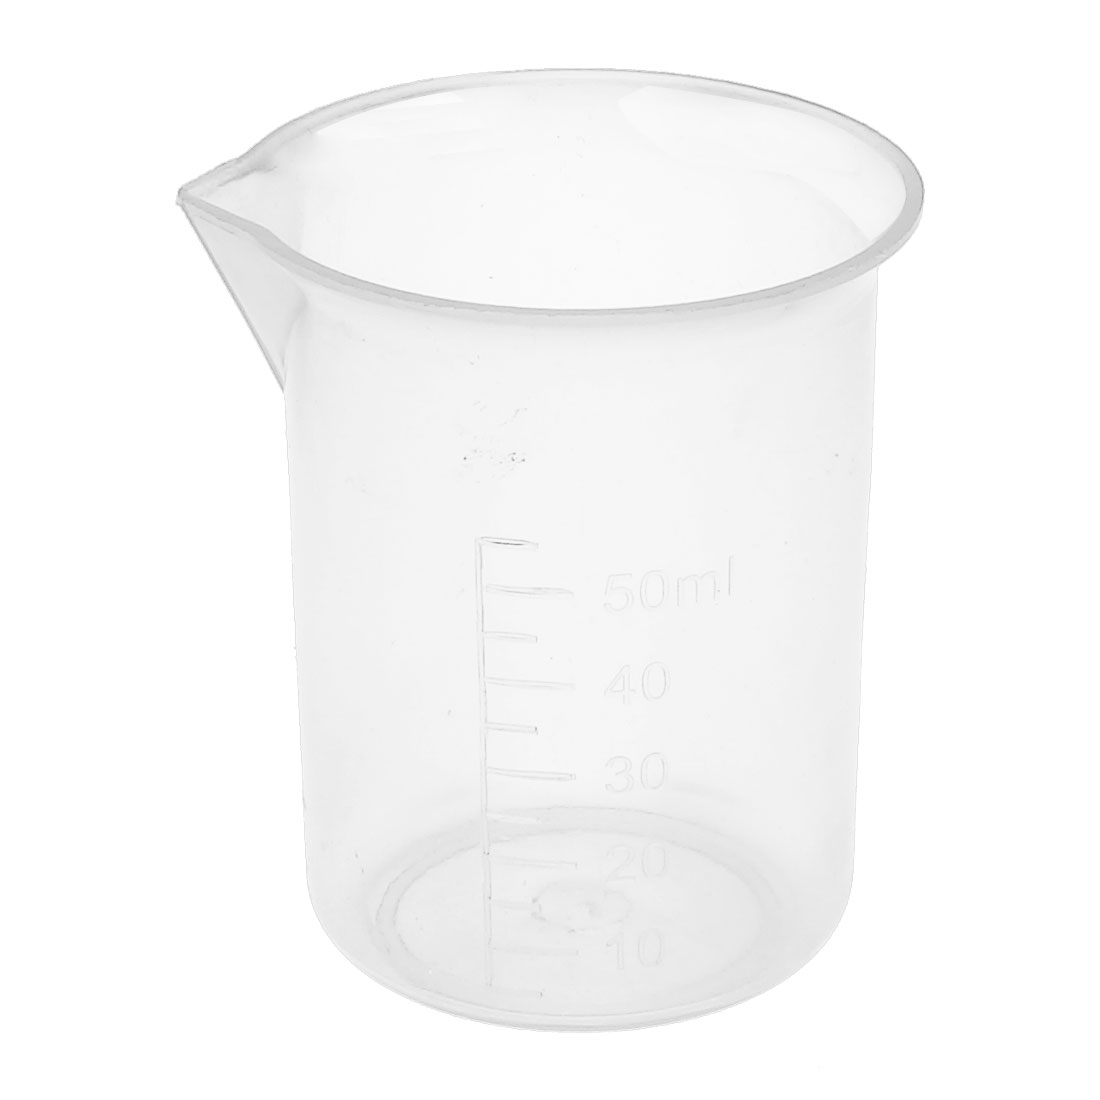 Lab Laboratory Chemistry Graduated Clear Plastic Water Liquid Measuring Container Testing Beaker 50mL